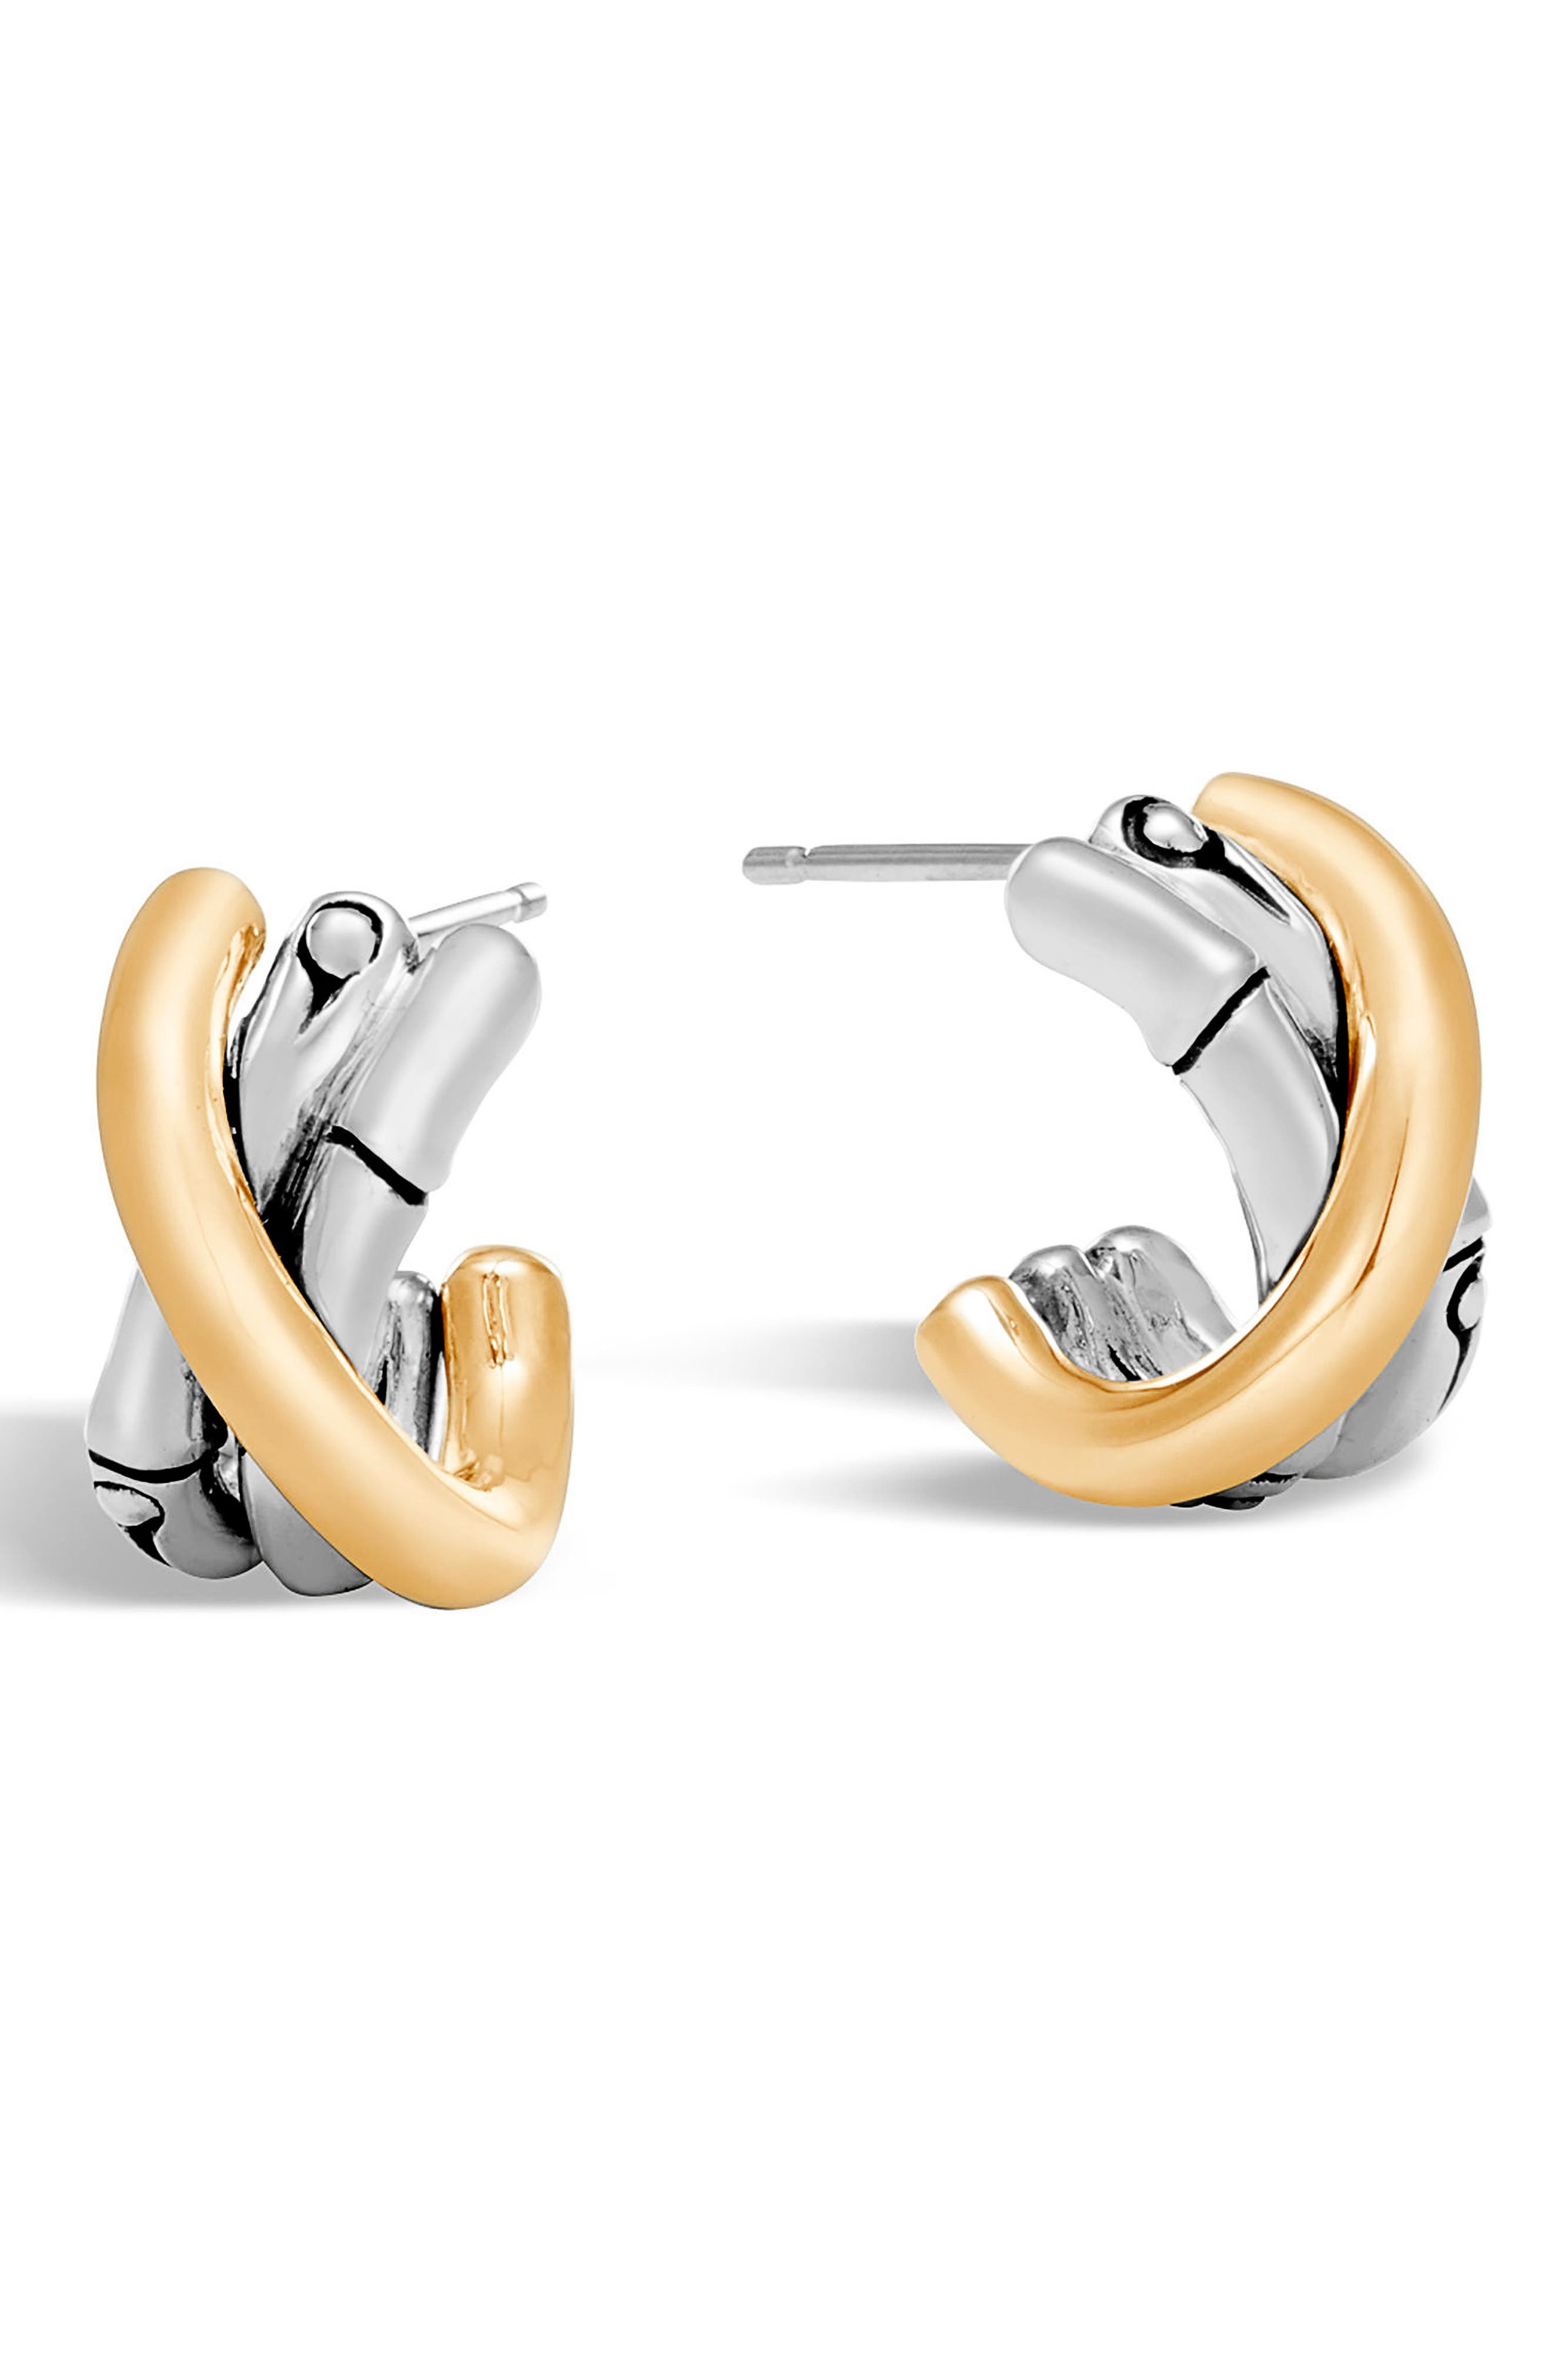 Bamboo Stud Earrings,                         Main,                         color, Silver/ Gold